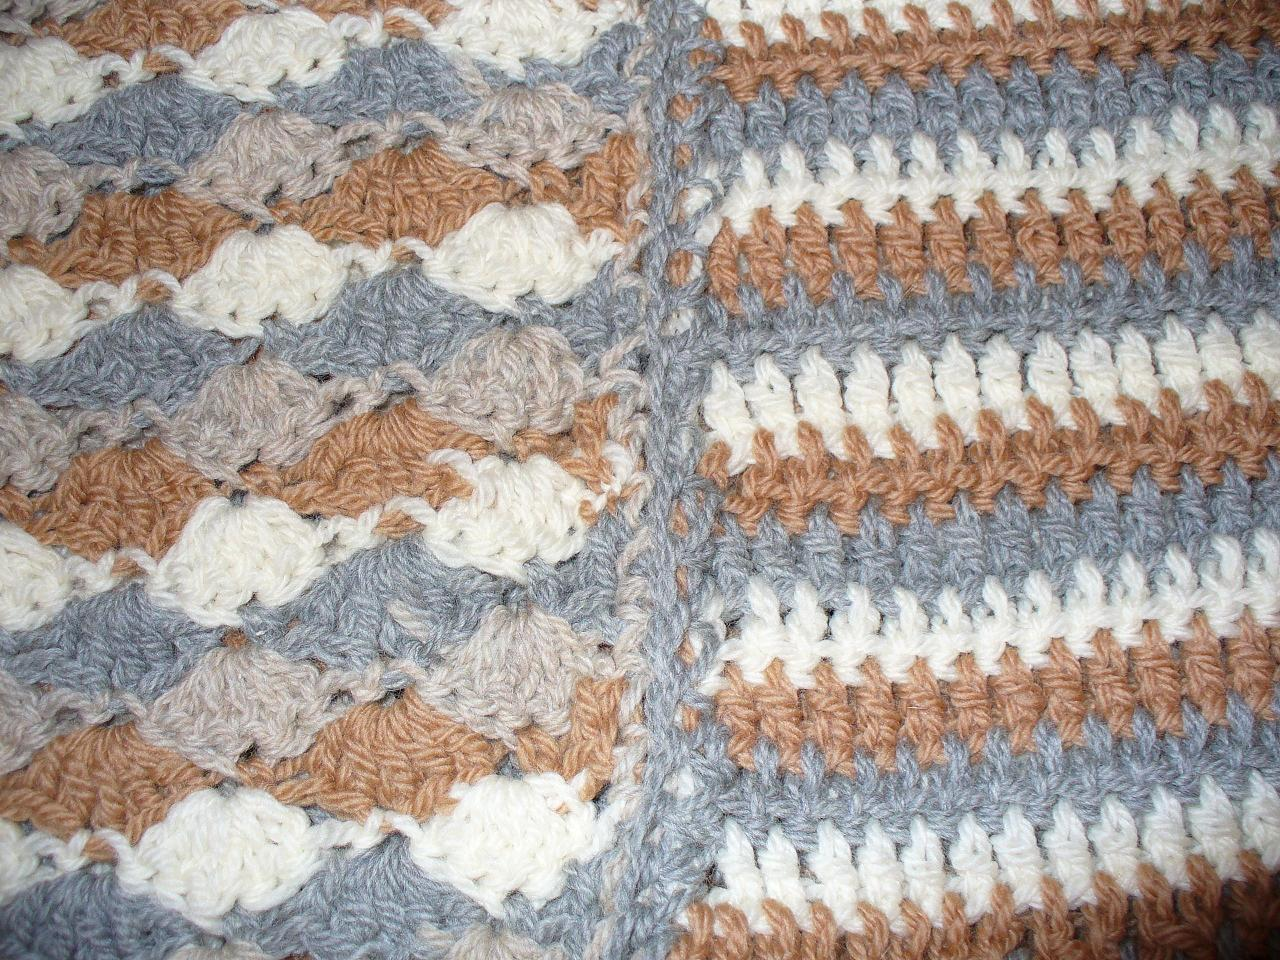 Crochet Vs Knit Scarf : Knitting VS Crochet: My Nephews Crochet Blanket